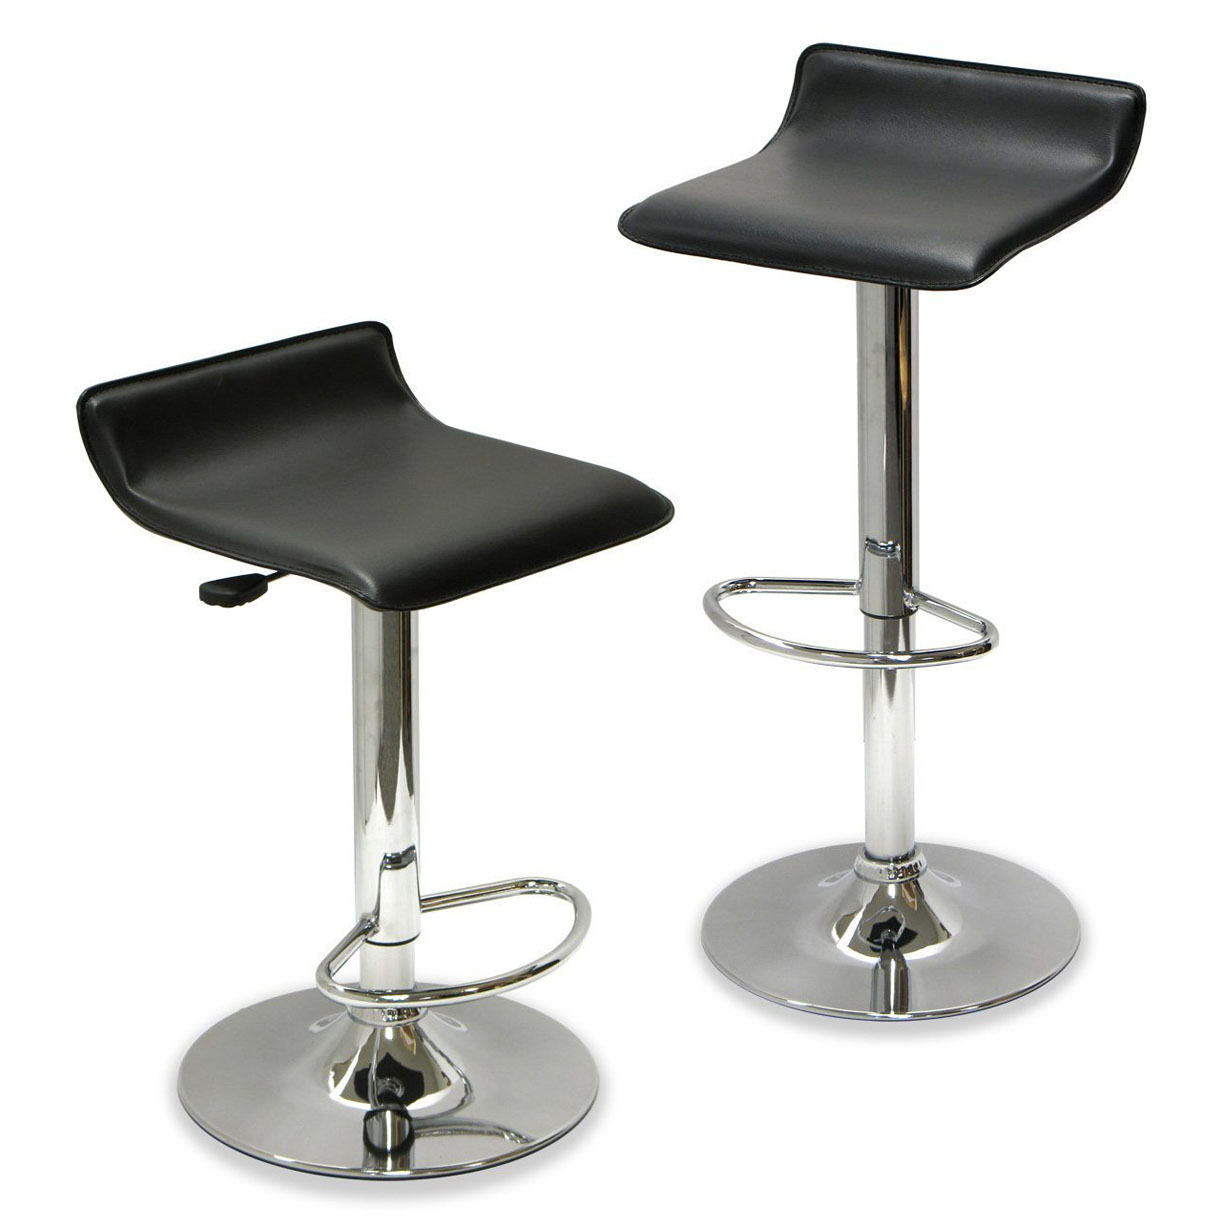 kitchen stools kitchen counter chairs Counter Height Bar Stools